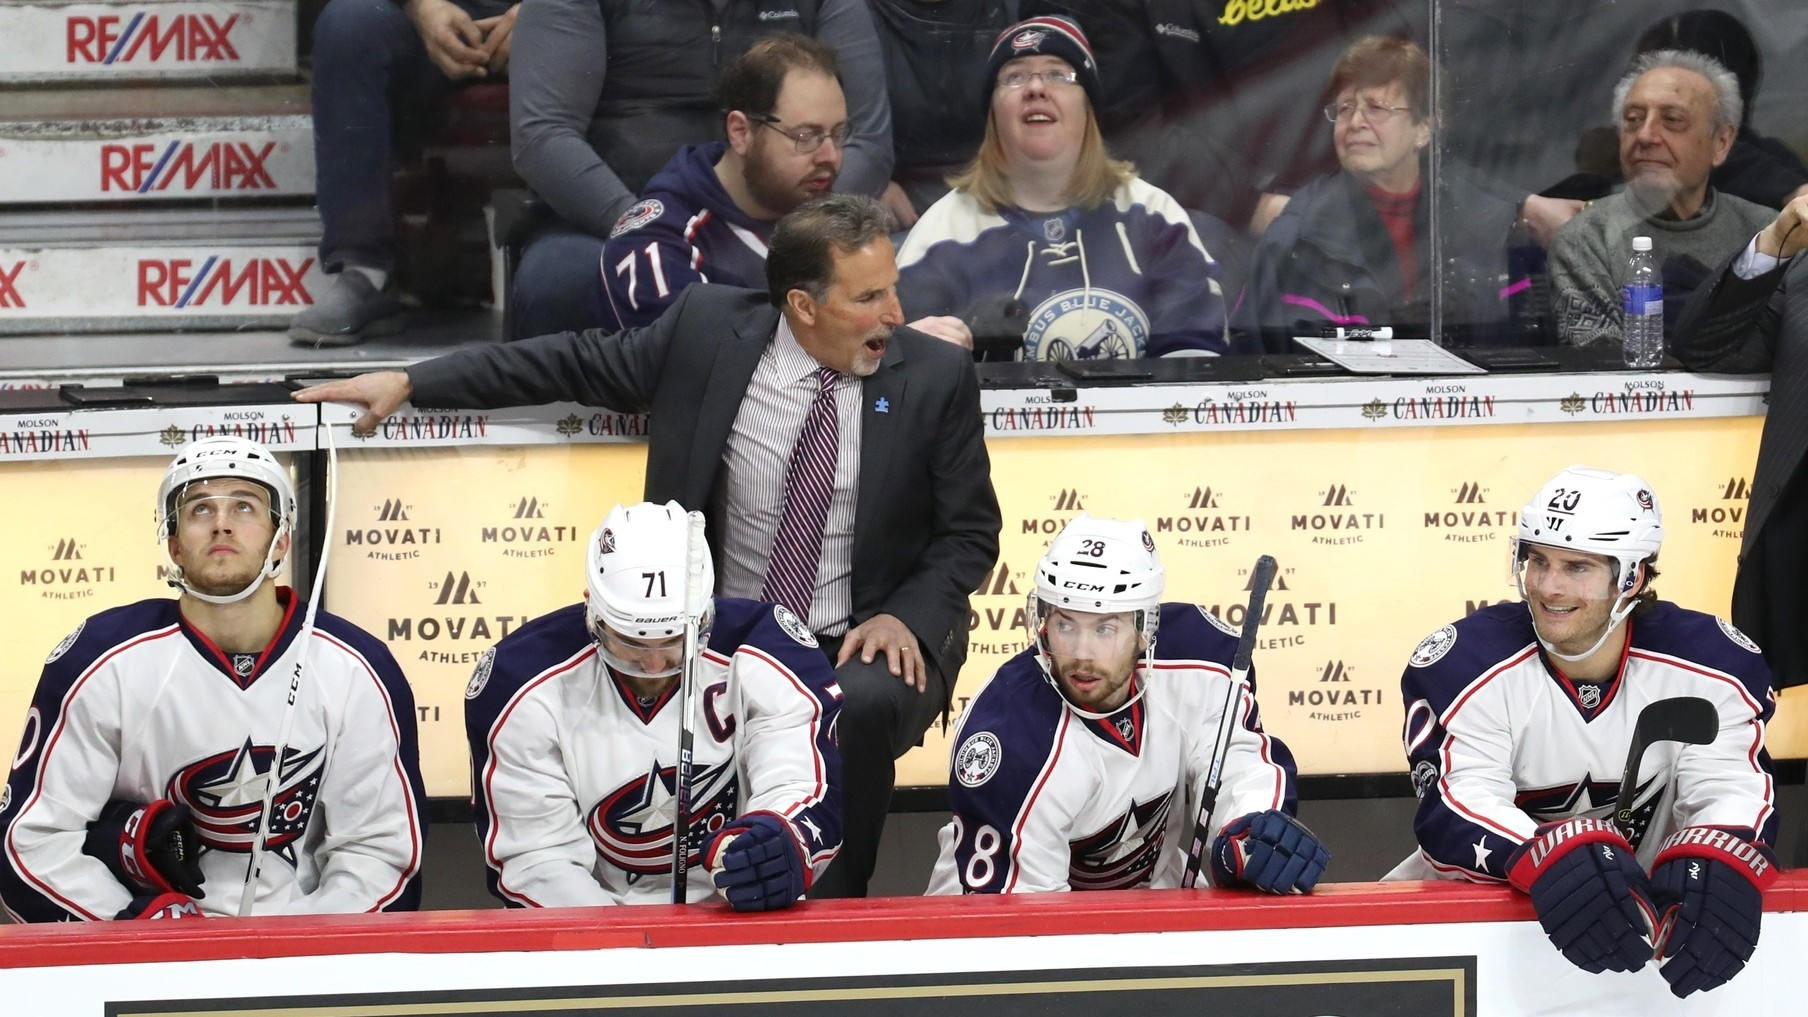 Biscuits Hockey Podcast Episode 21: TORTS REFORM